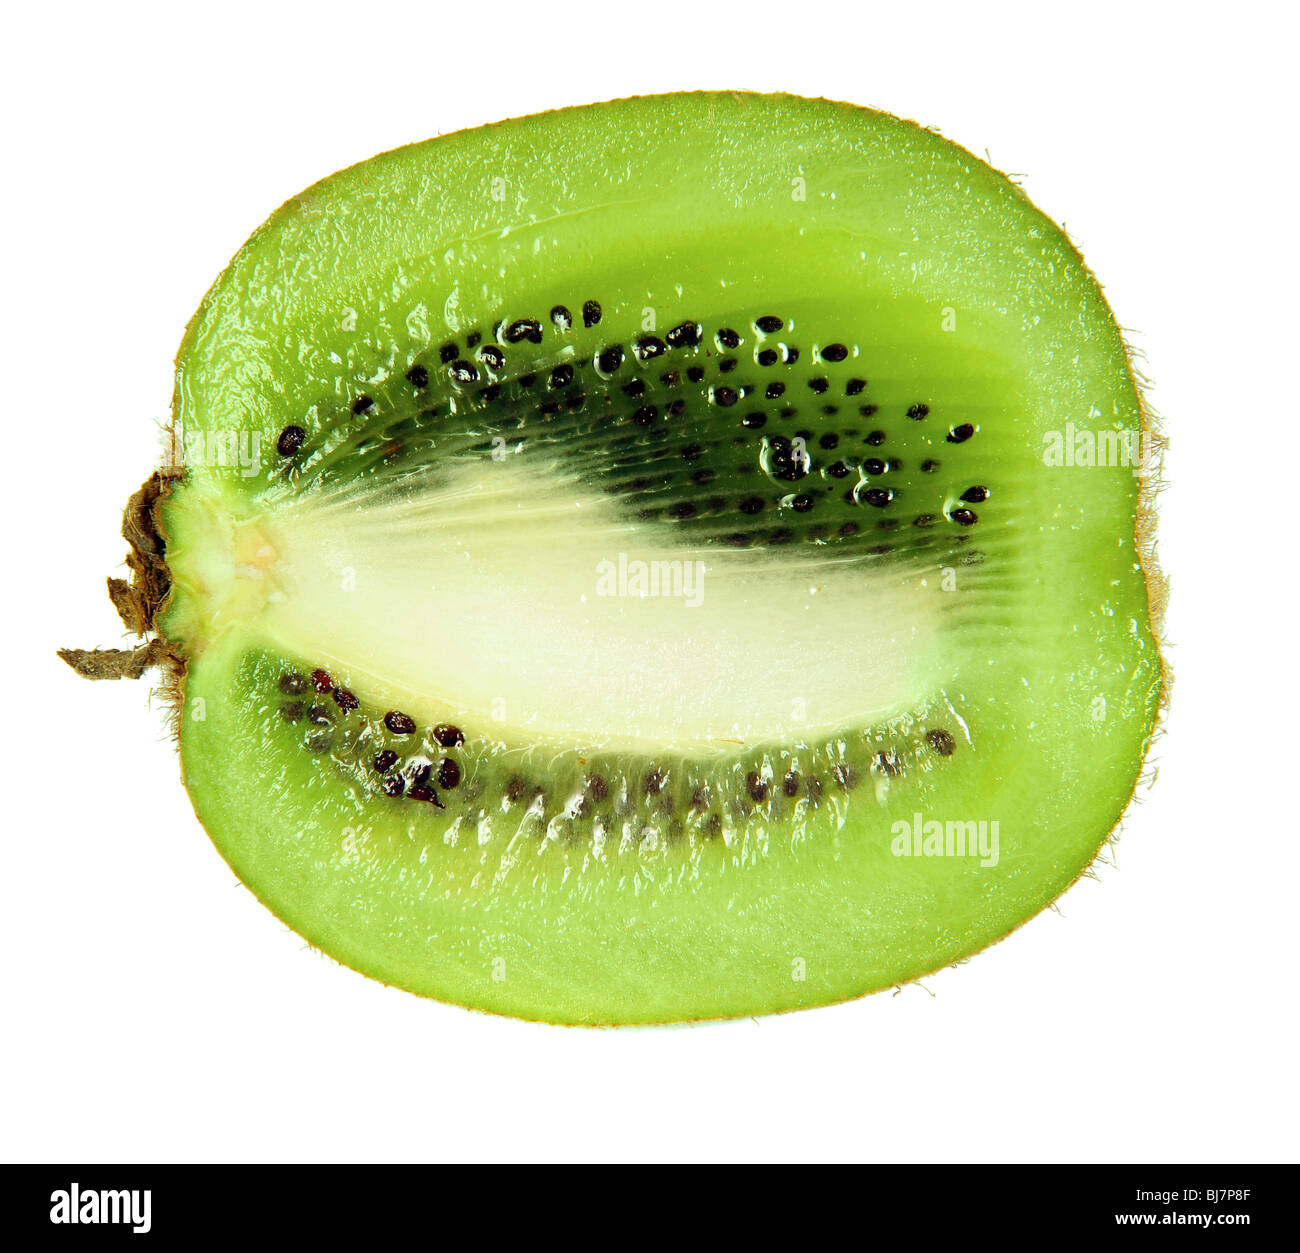 Tranche de kiwi isolated on white Photo Stock